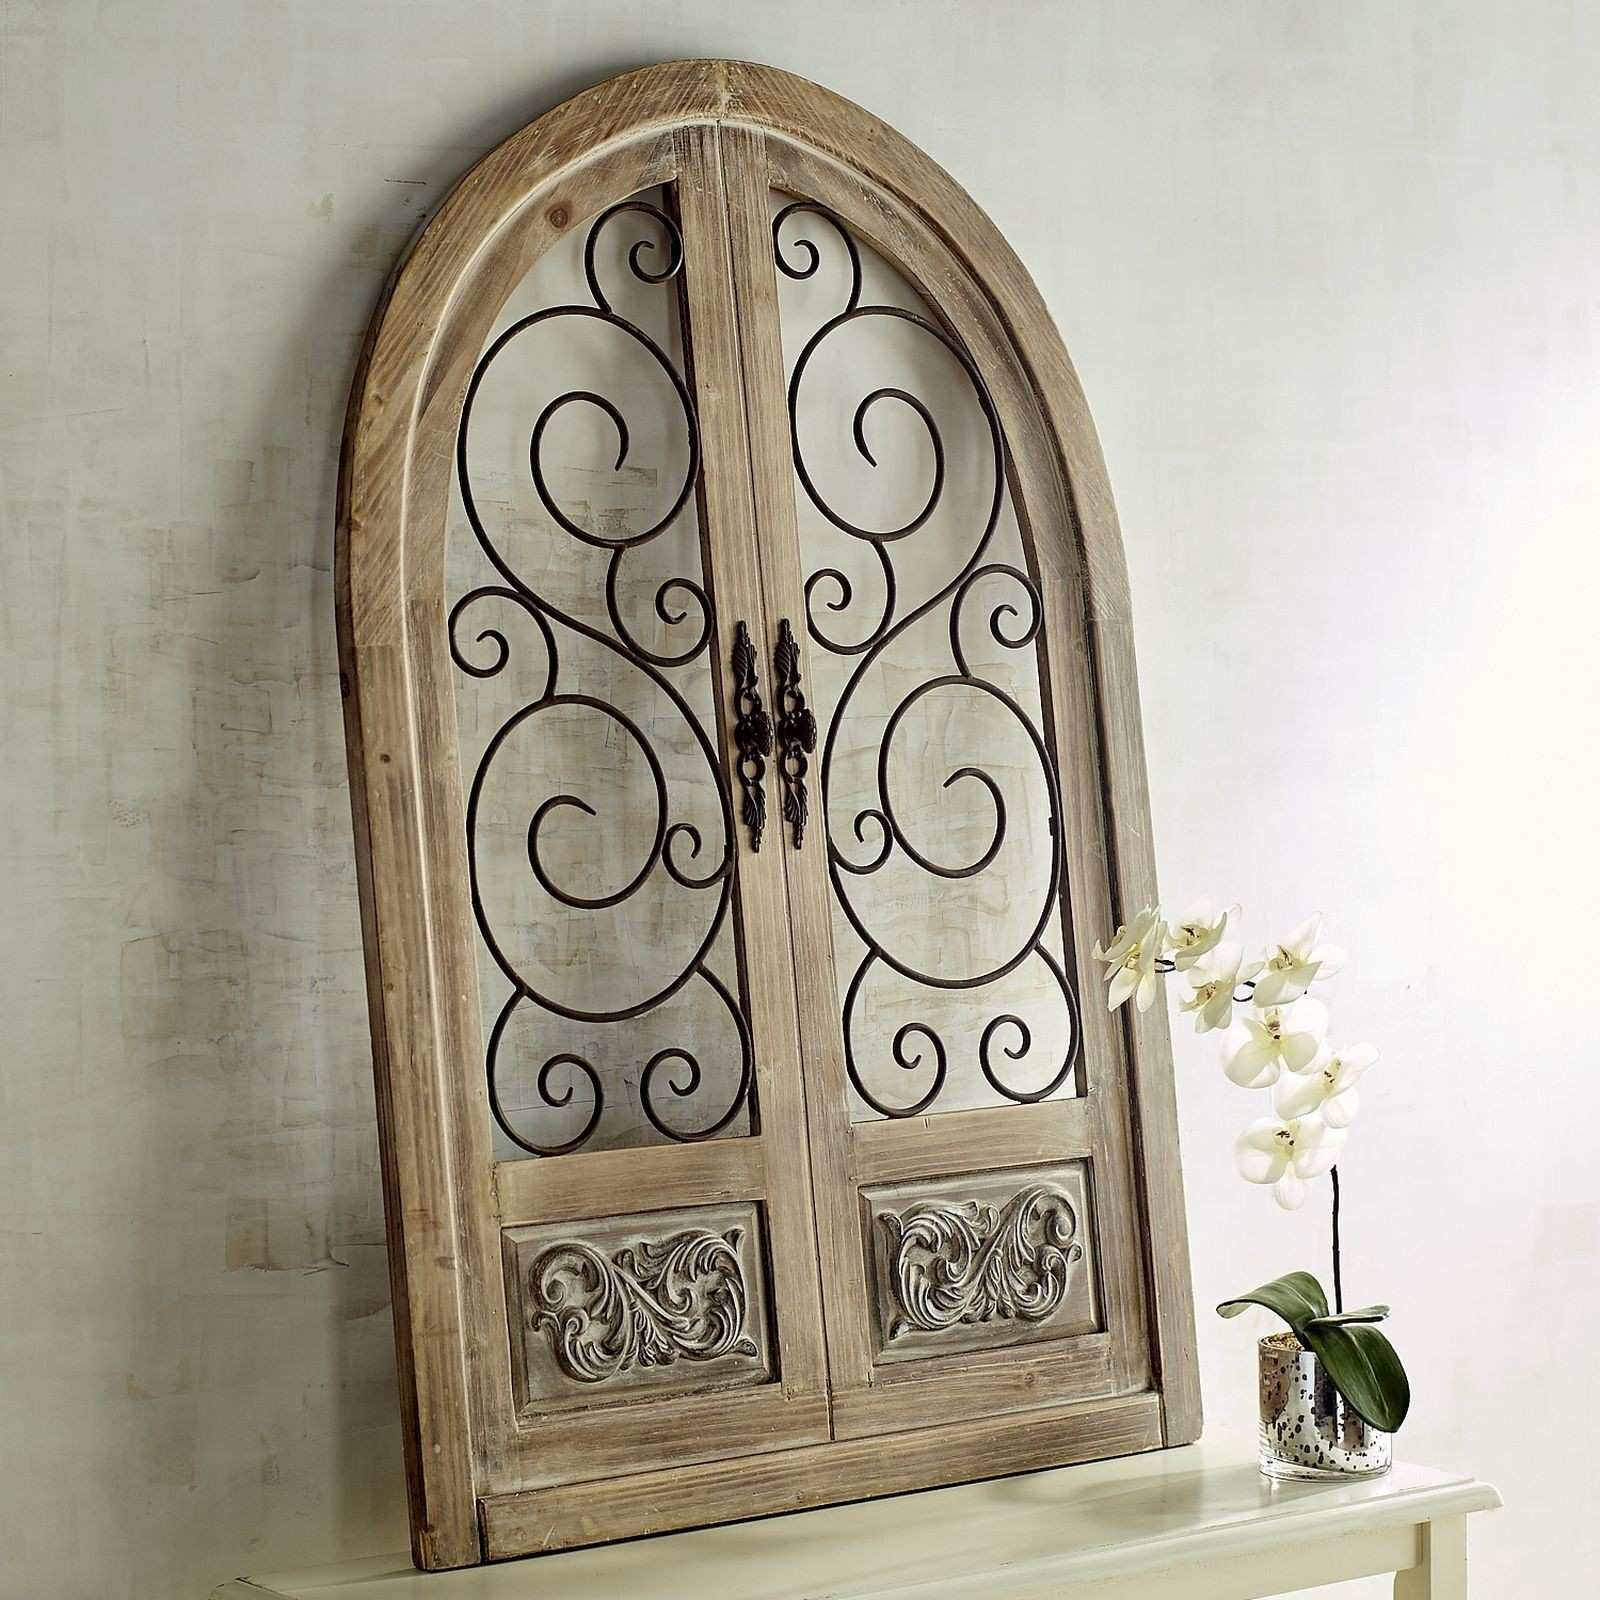 Pier 1 Imports Merville Arch Wall Decor Design Ideas Wood